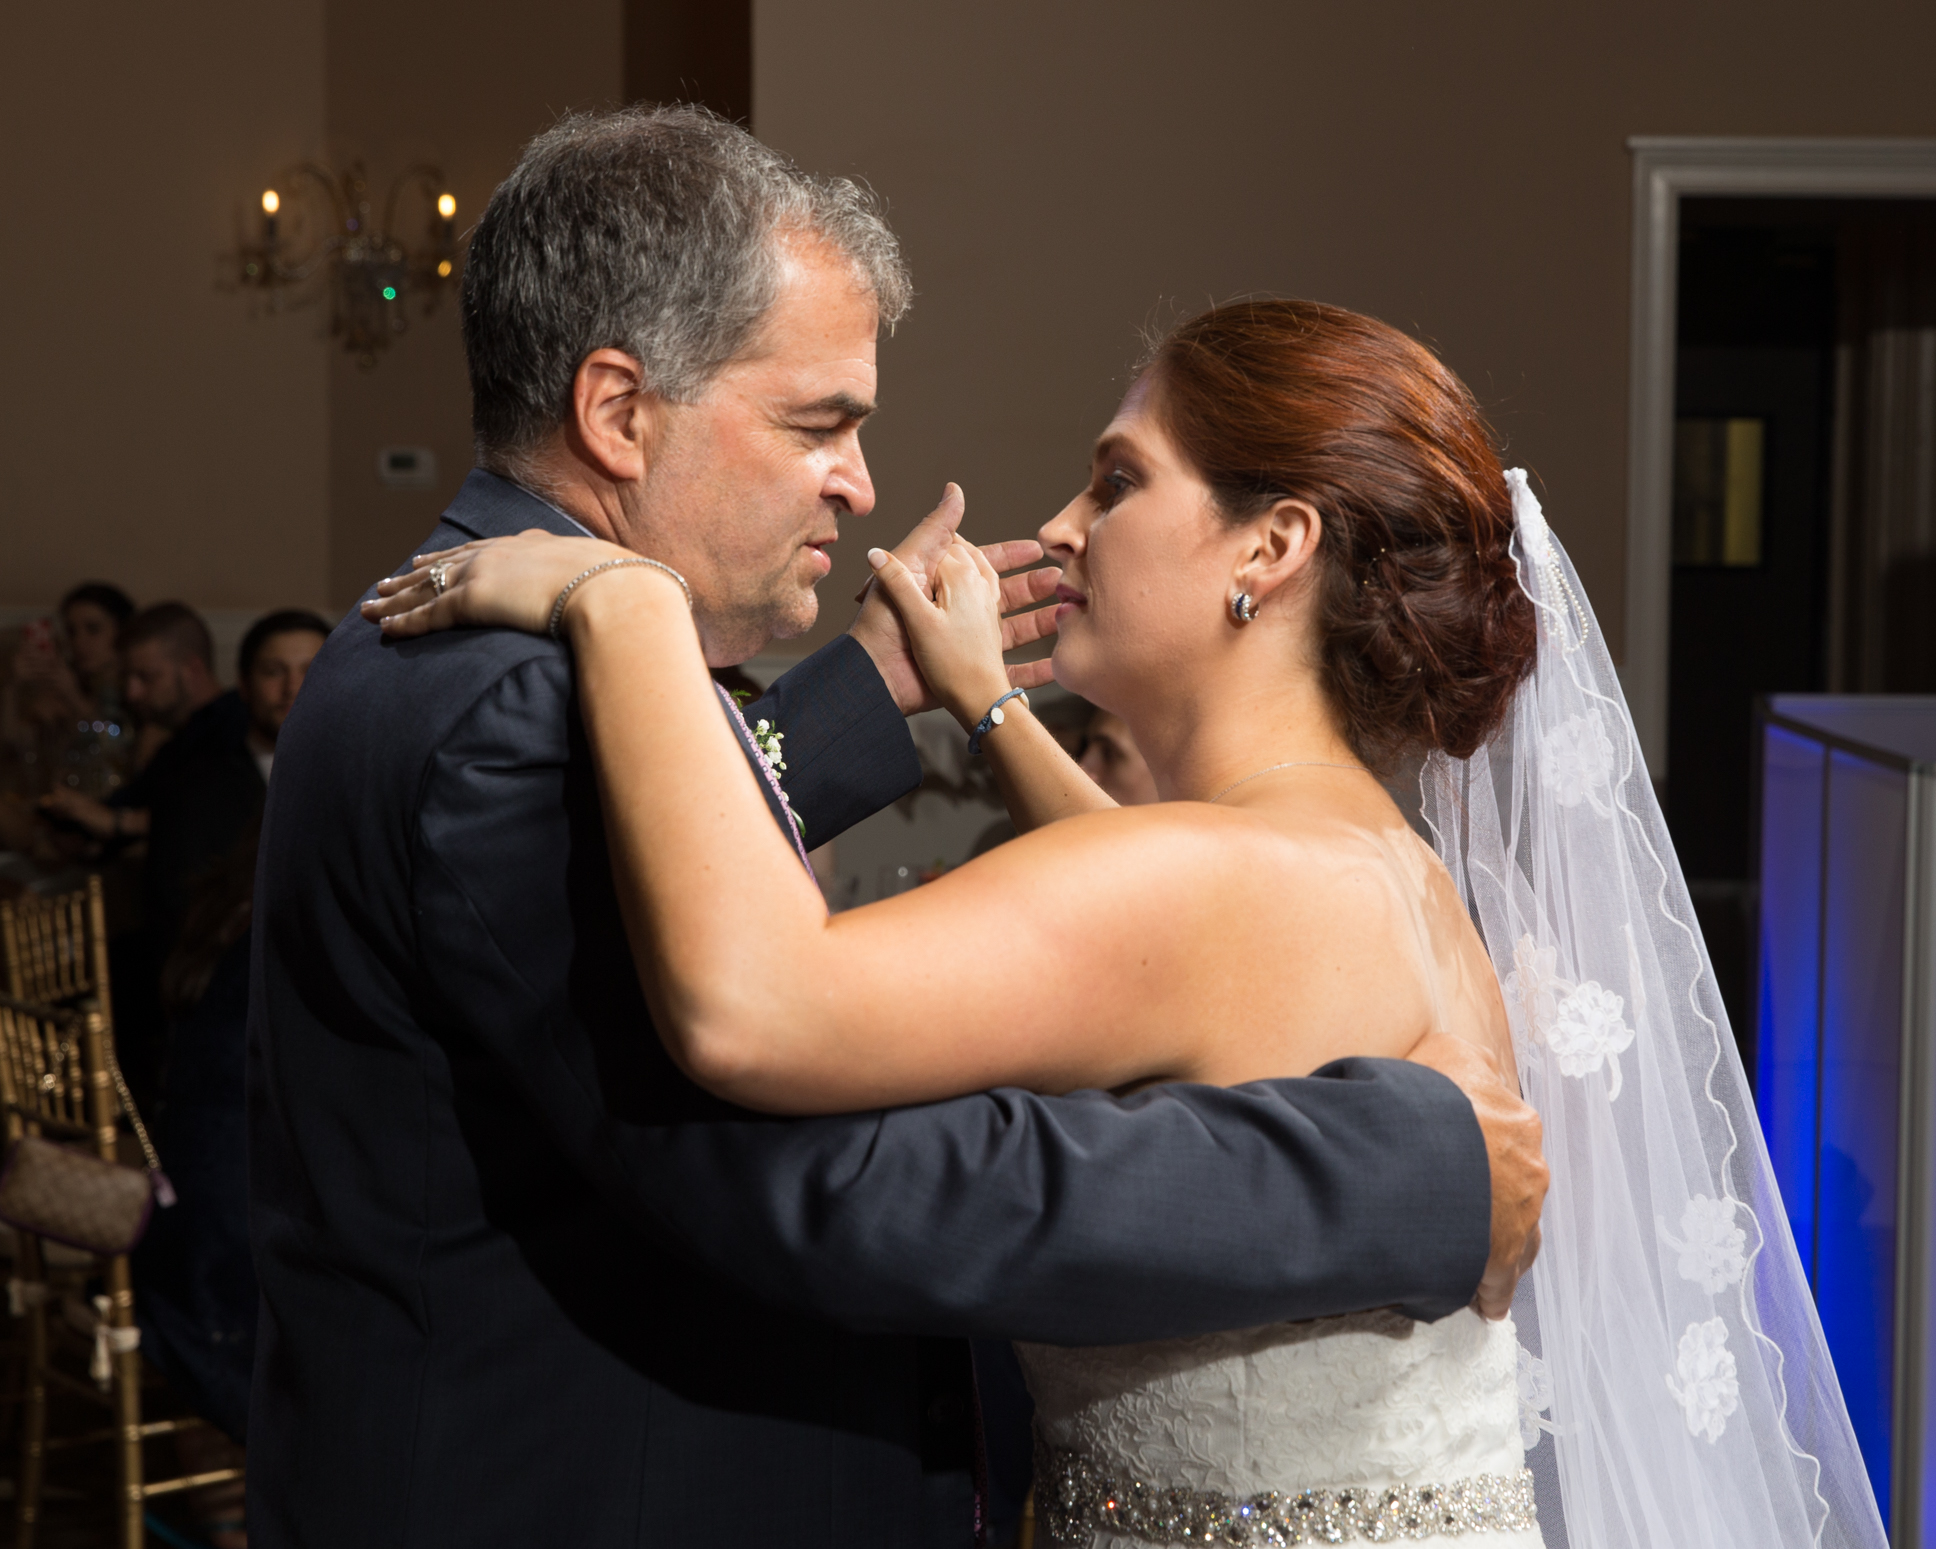 Wedding Lighting Adds Vibrance To Your Photos